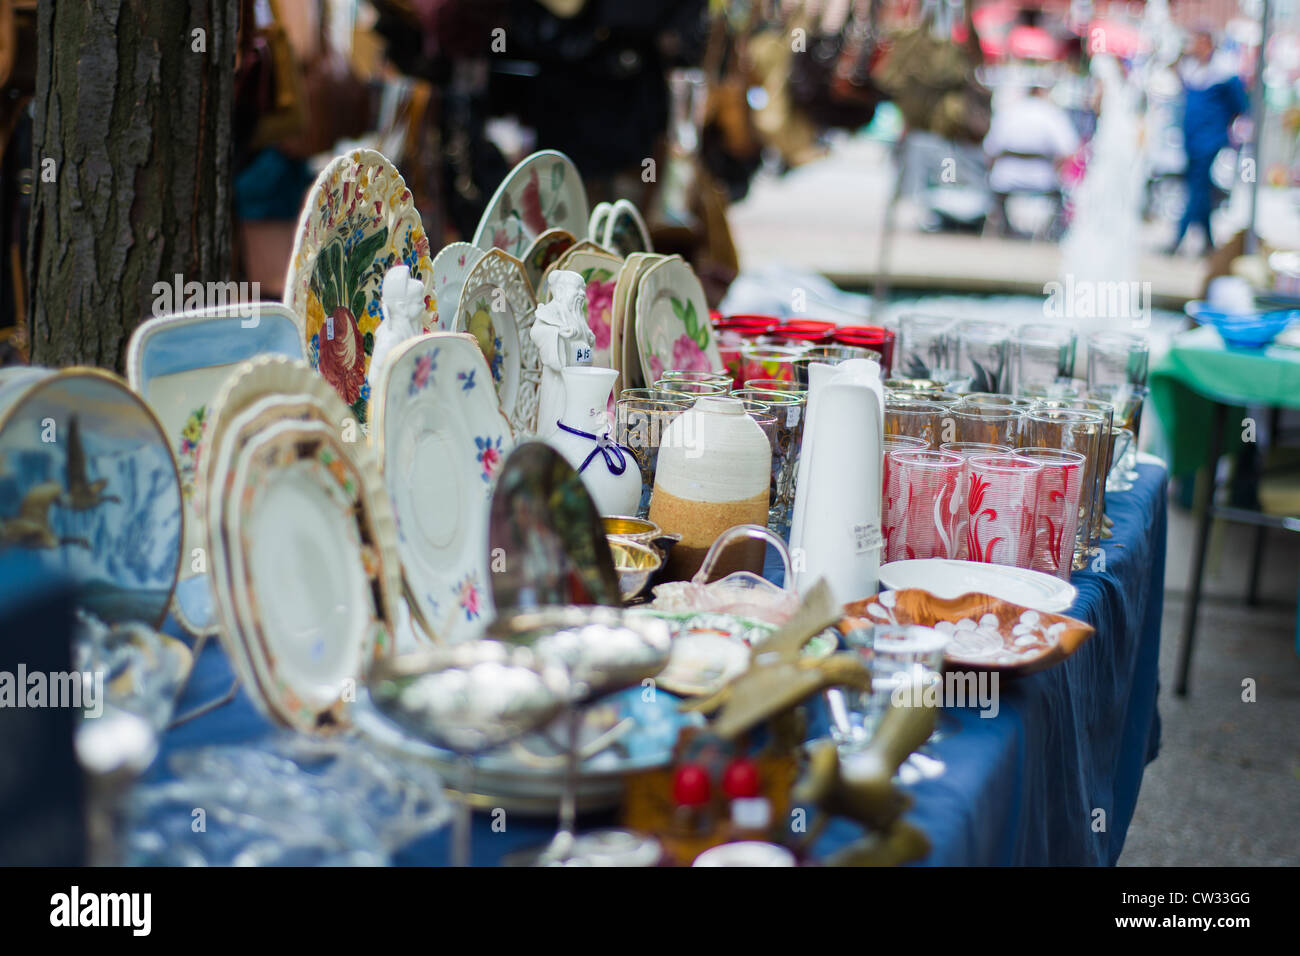 Antiques fair table of items. - Stock Image